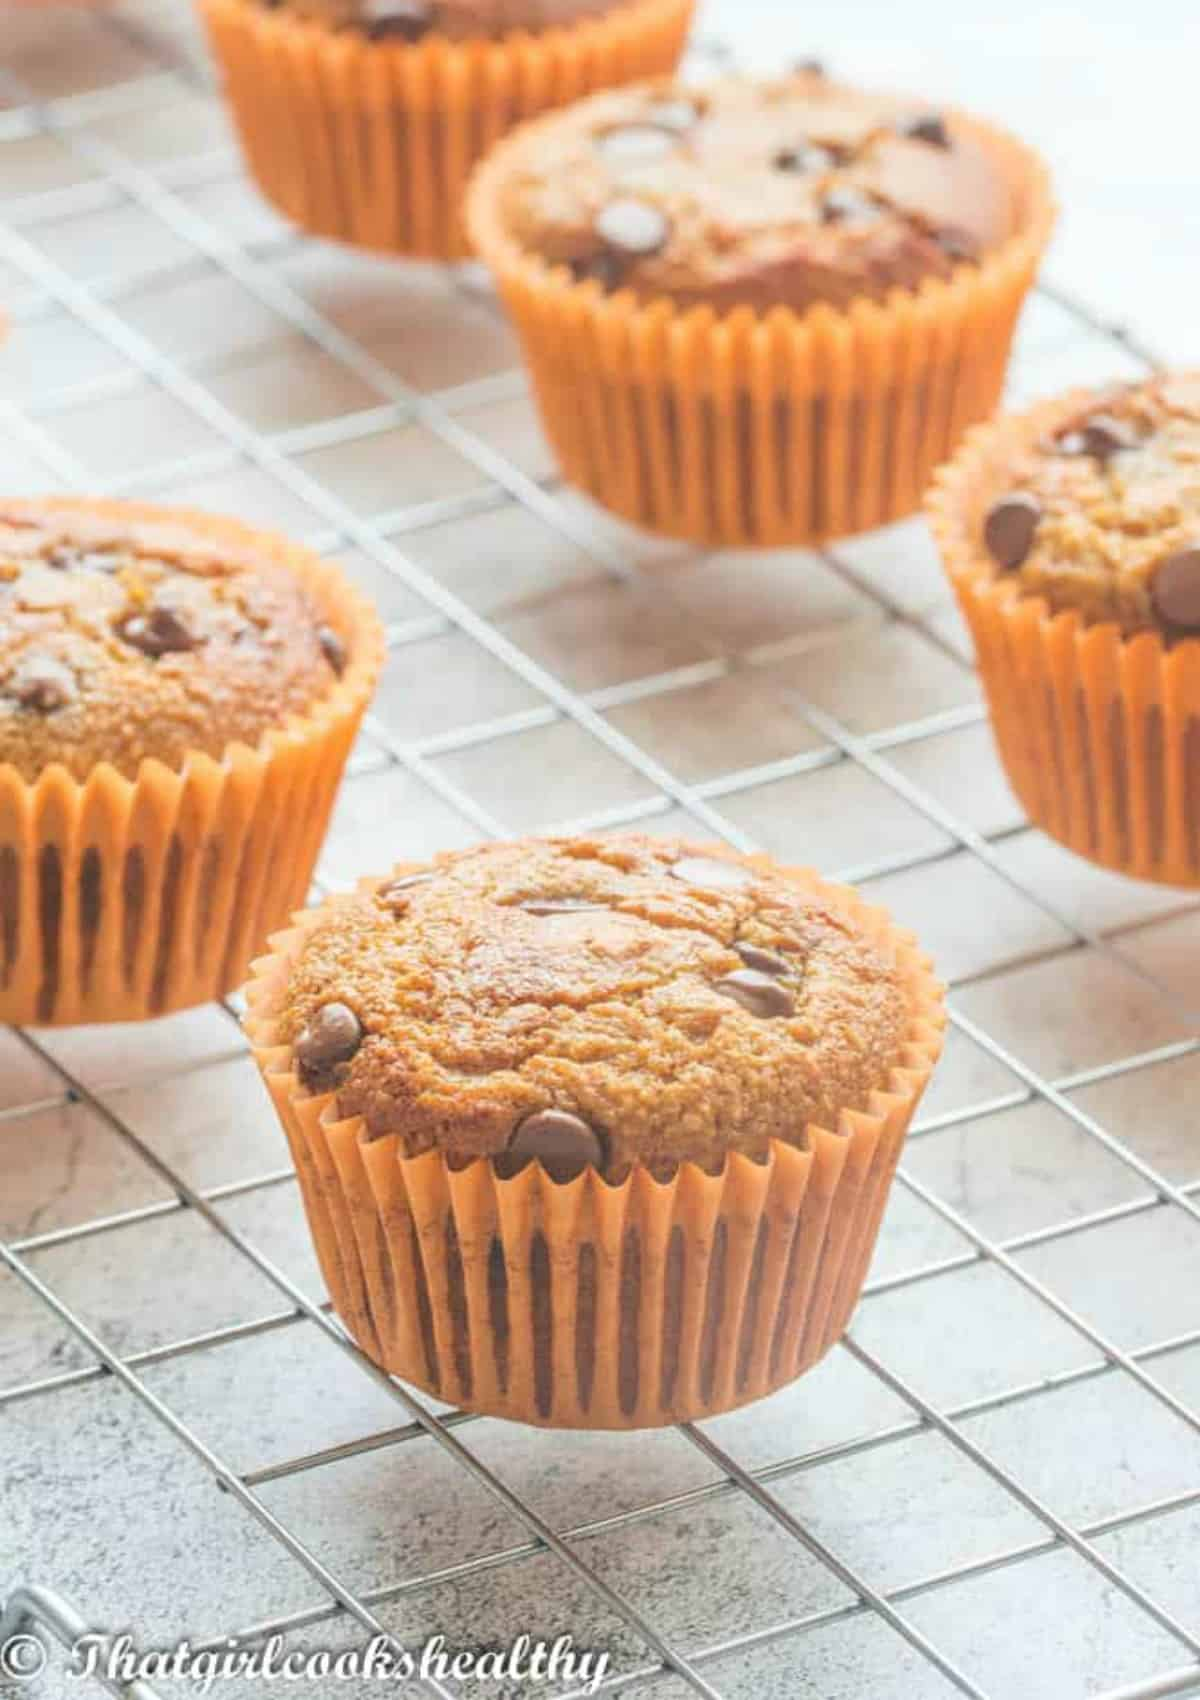 Muffins in brown casing